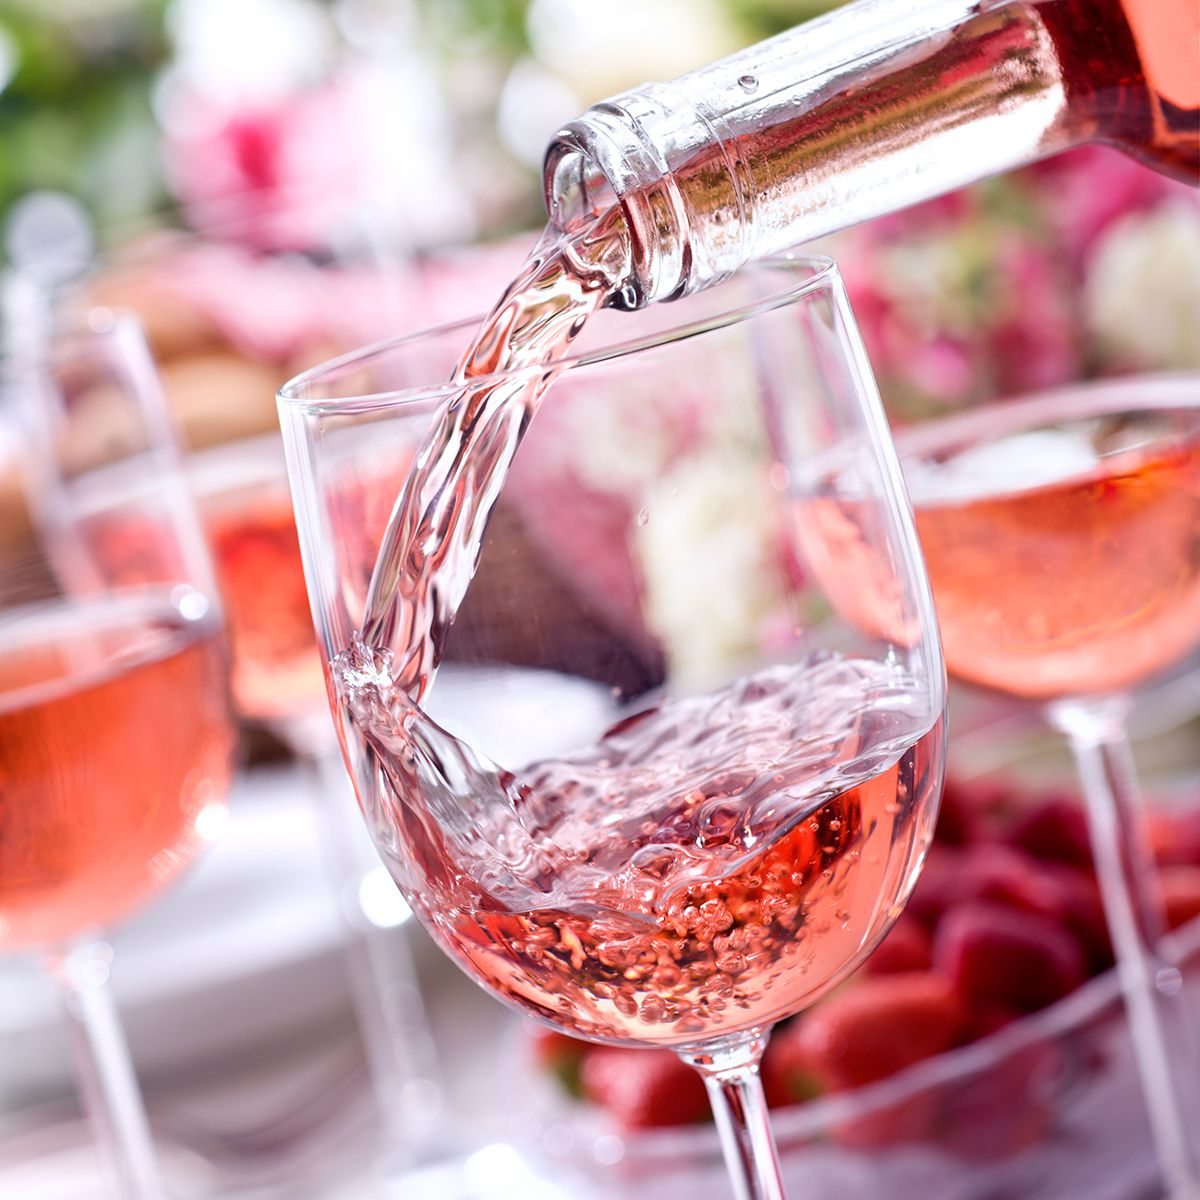 Rose Wine Market 2020 Global Outlook On Rising Demand And Trends – Citi Blog News photo